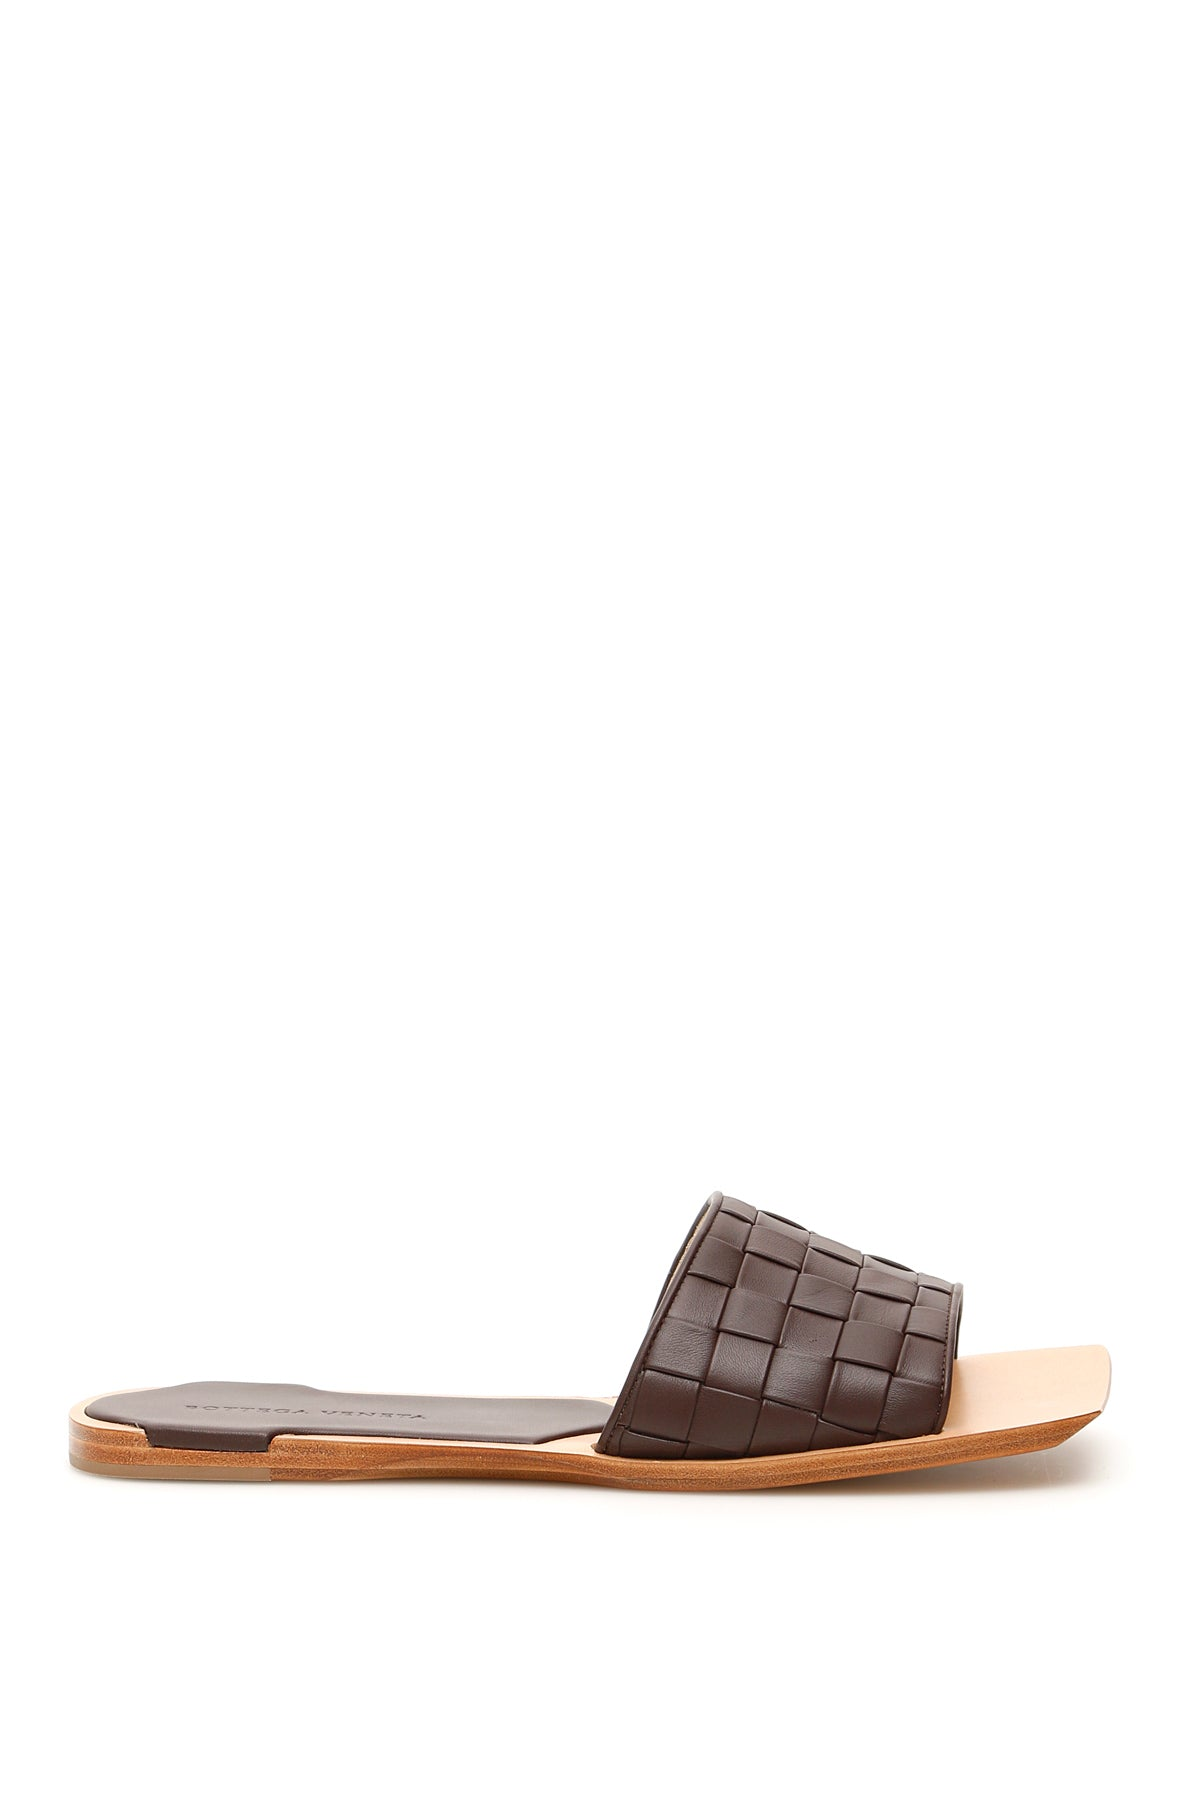 Bottega Veneta Slippers BOTTEGA VENETA INTRECCIATO SLIDES